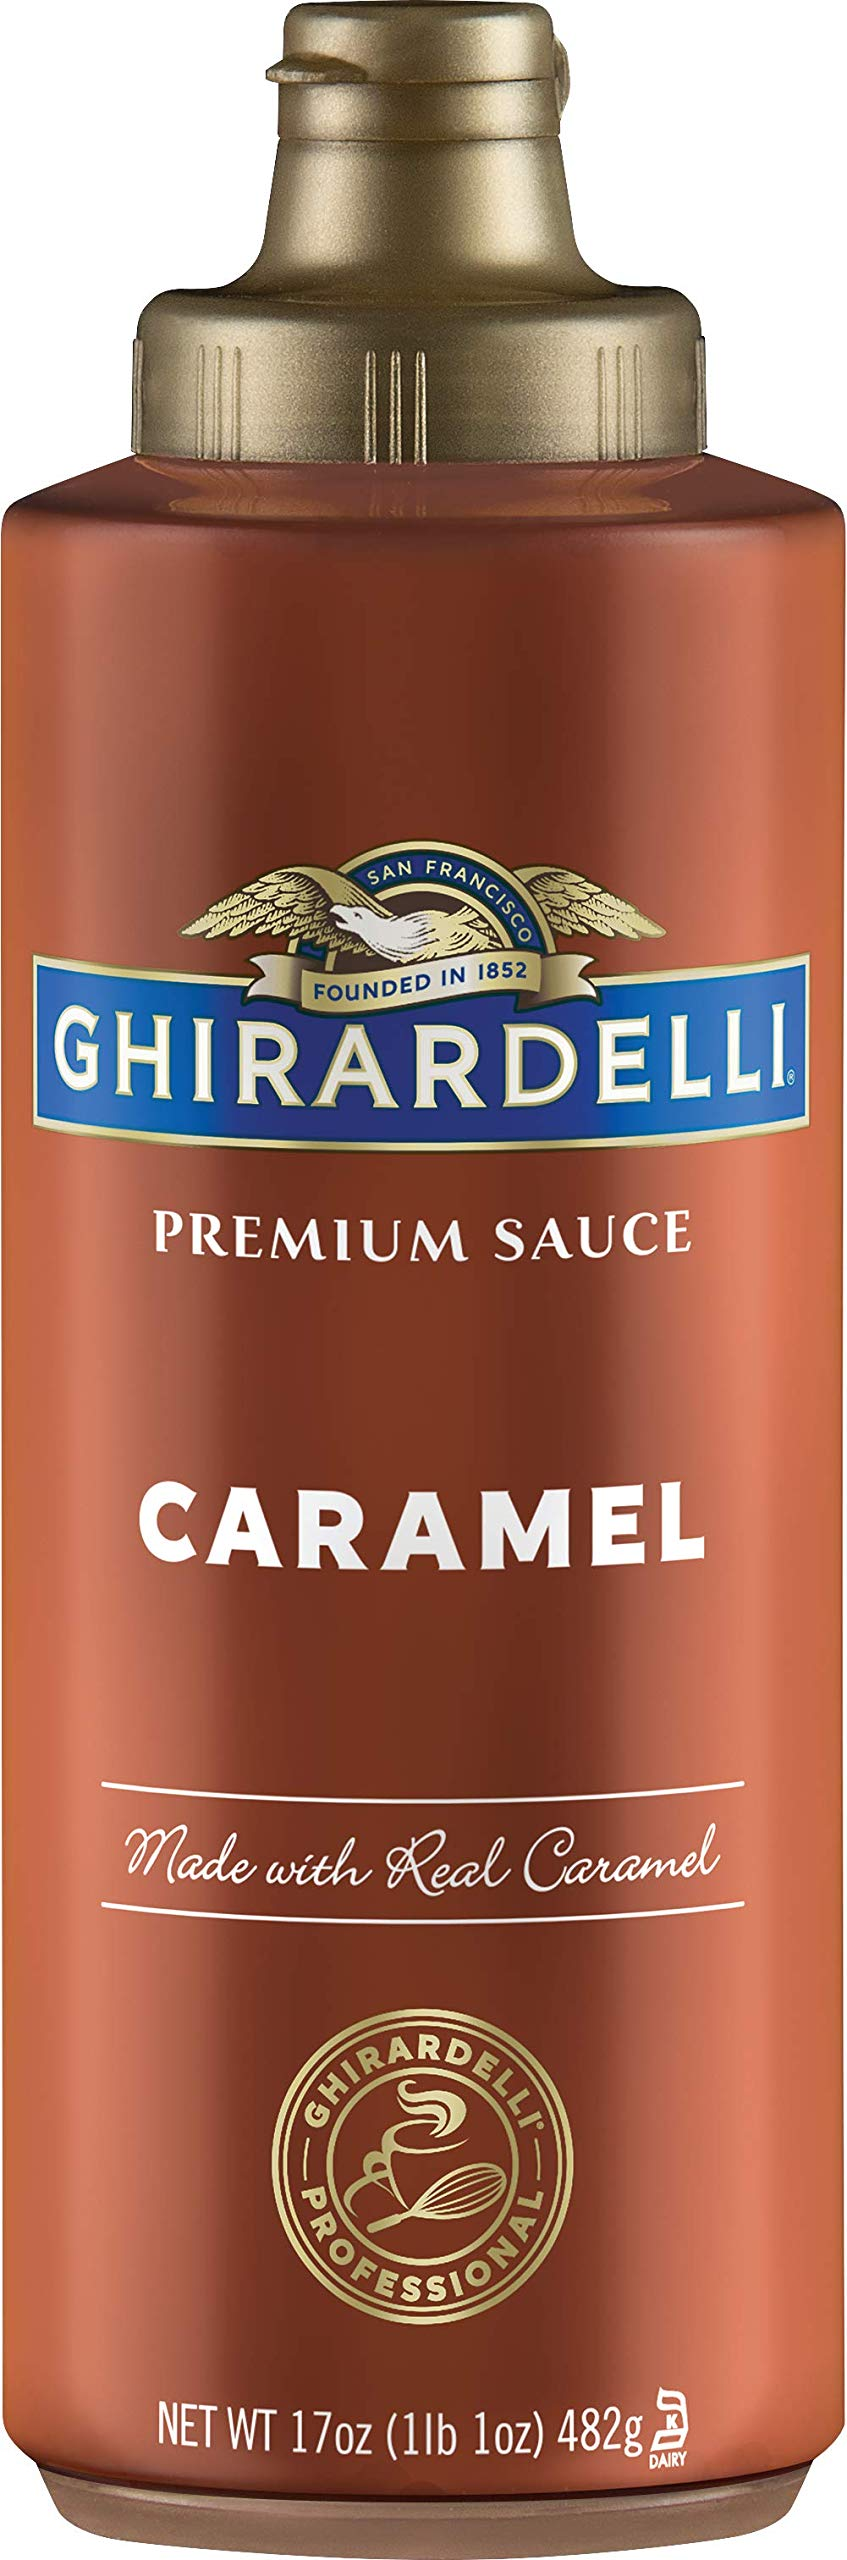 Ghirardelli Caramel Flavored Sauce 17 oz. bottle